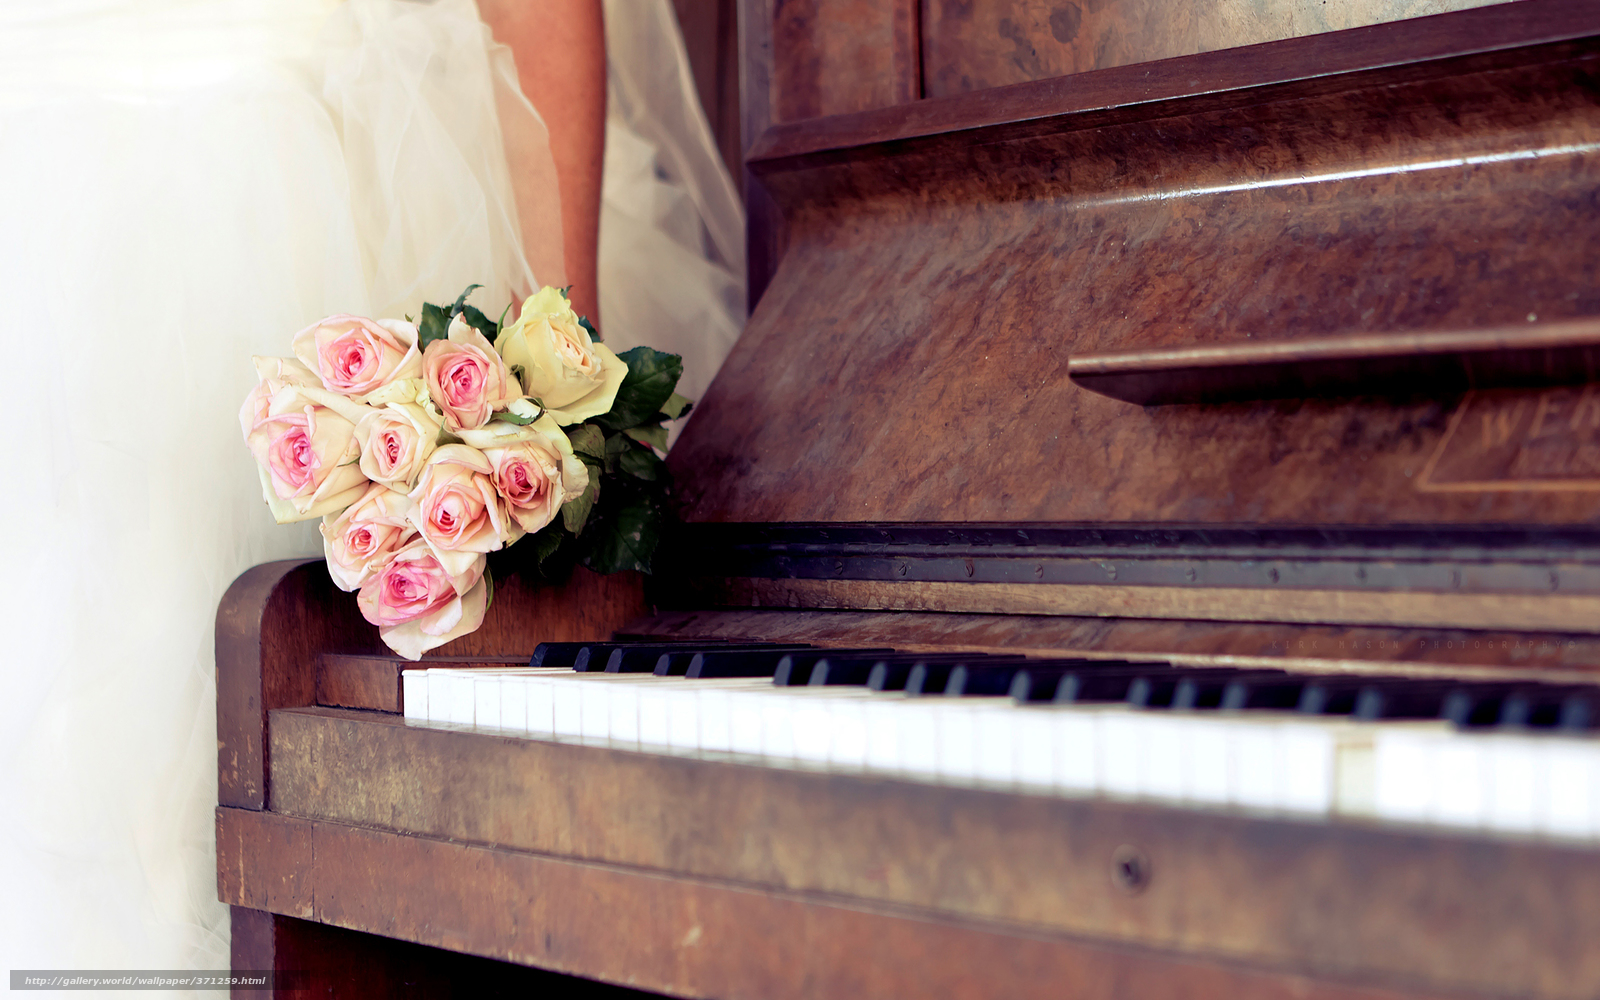 Tlcharger fond d ecran mariage piano bouquet roses fonds d